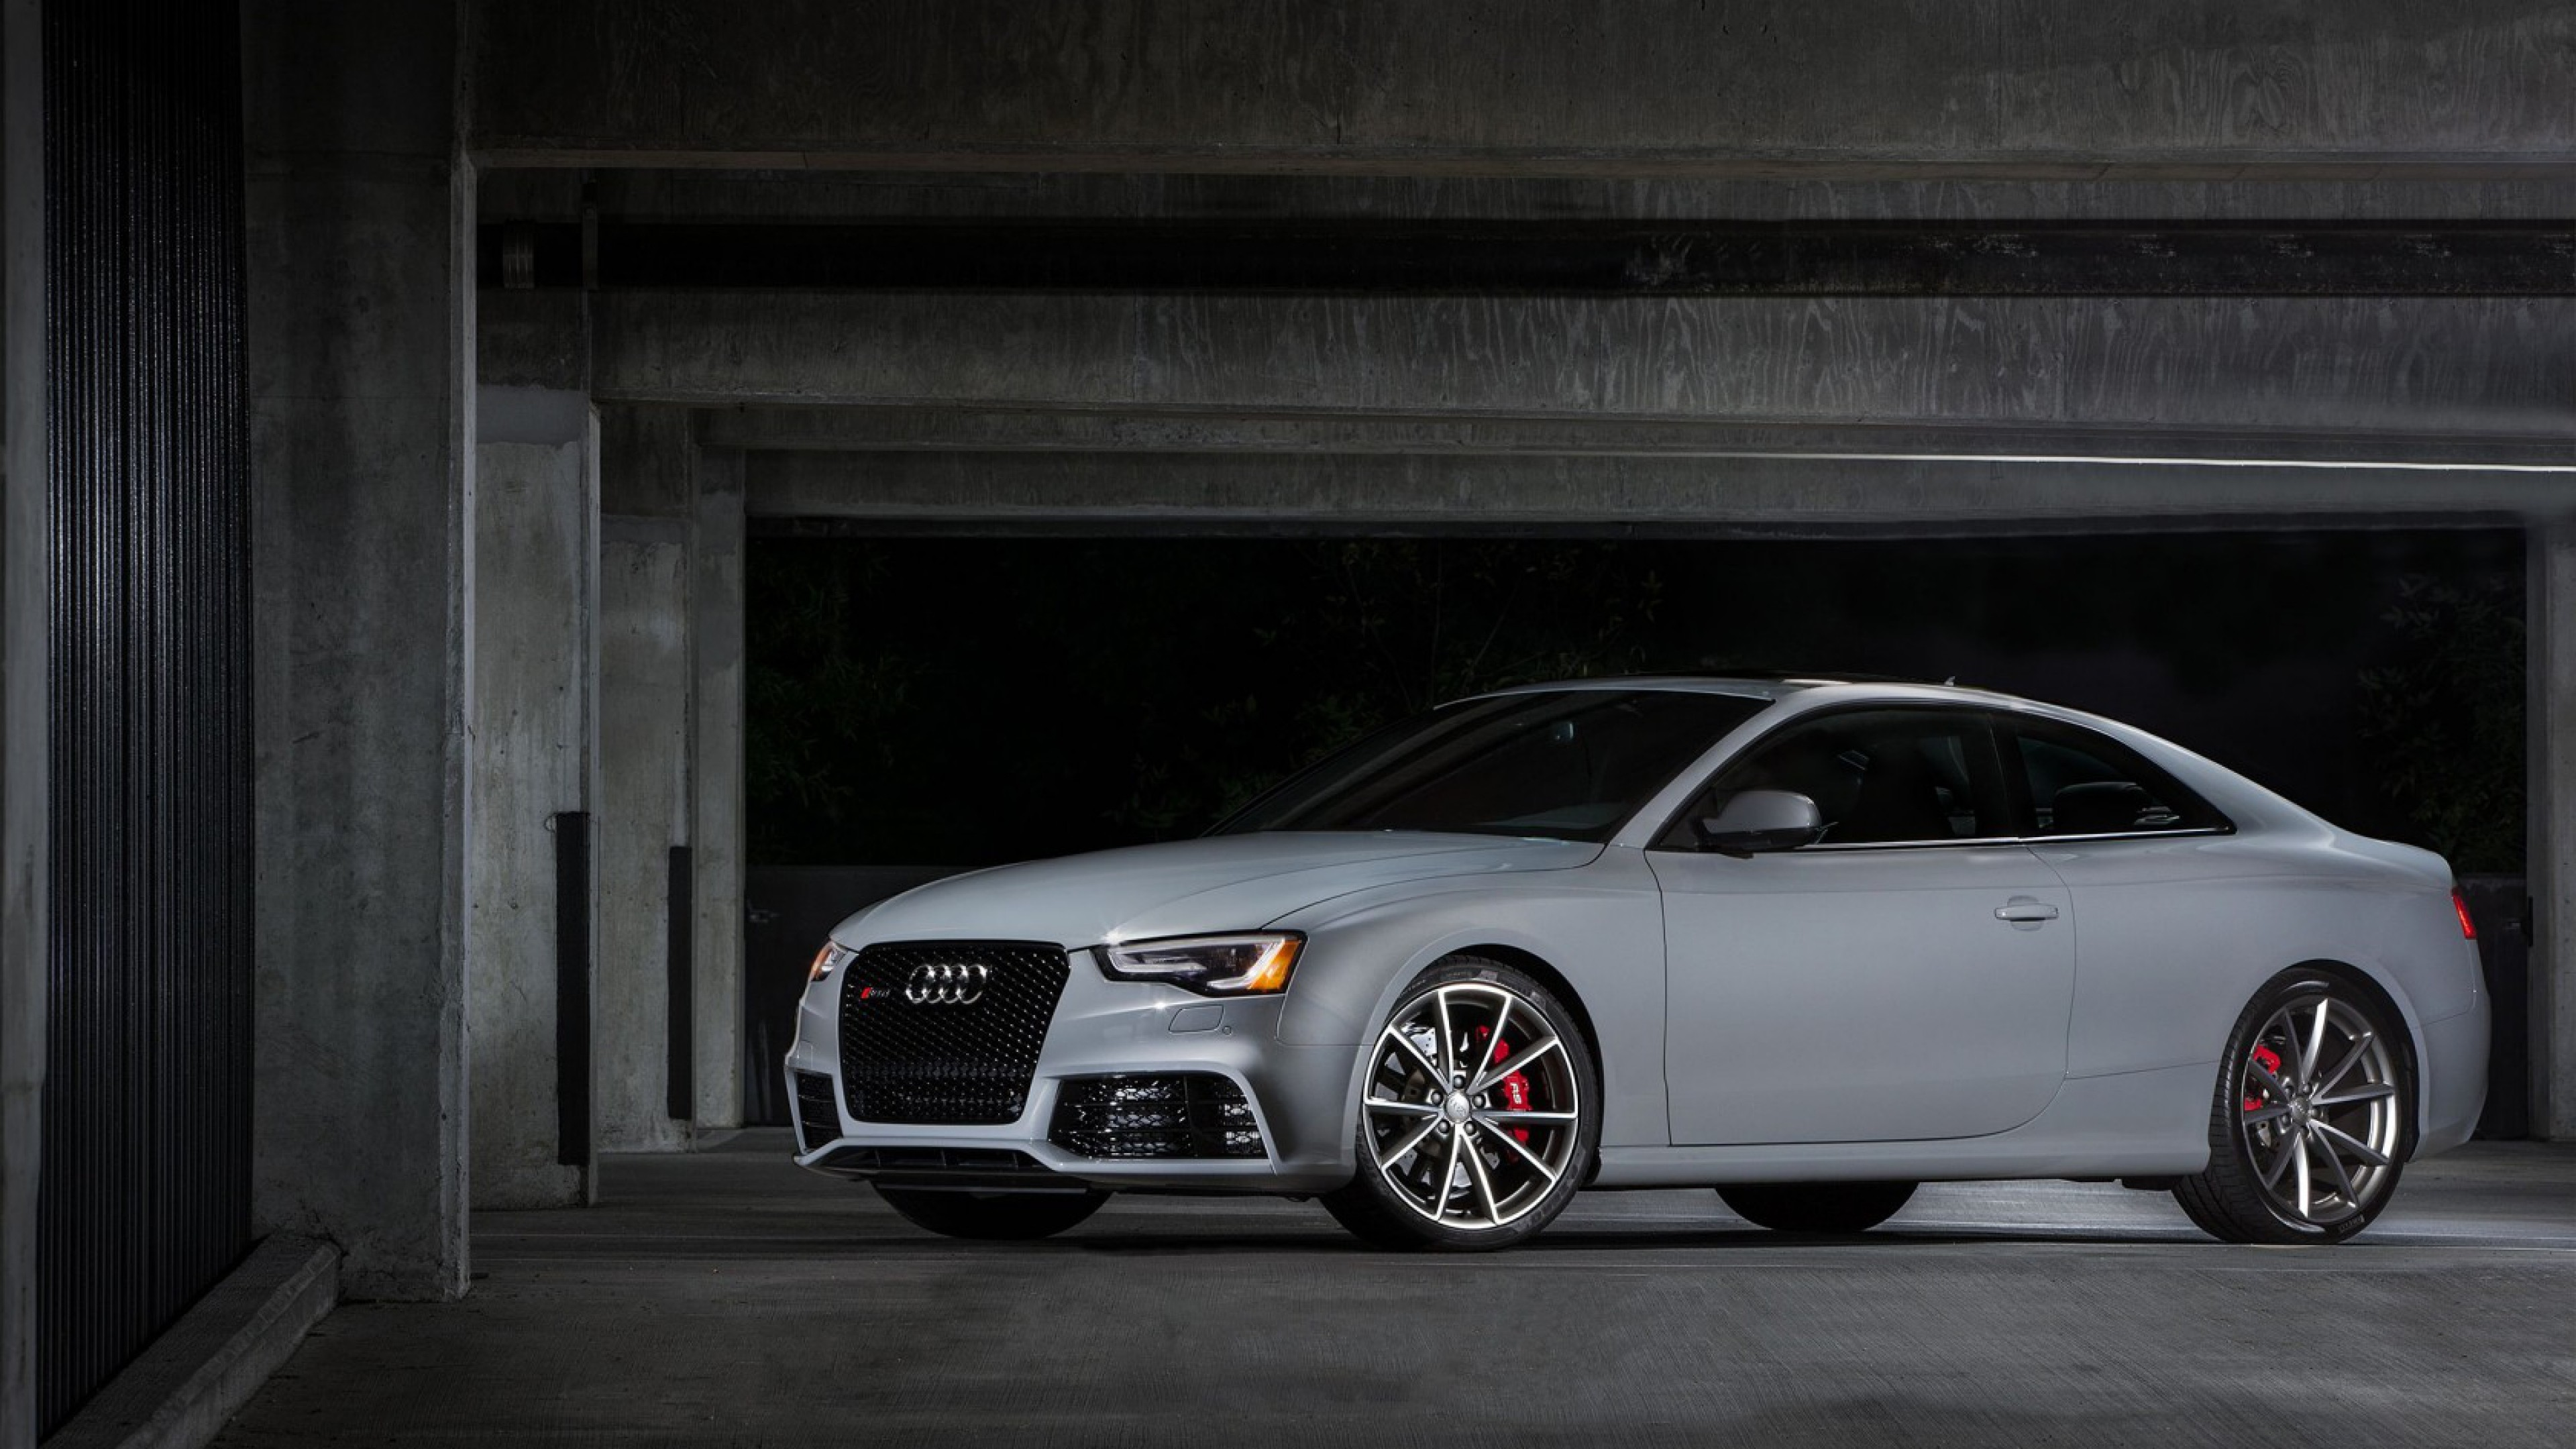 Res: 3840x2160, wallpaper.wiki-Download-Audi-S5-Picture-PIC-WPB008794